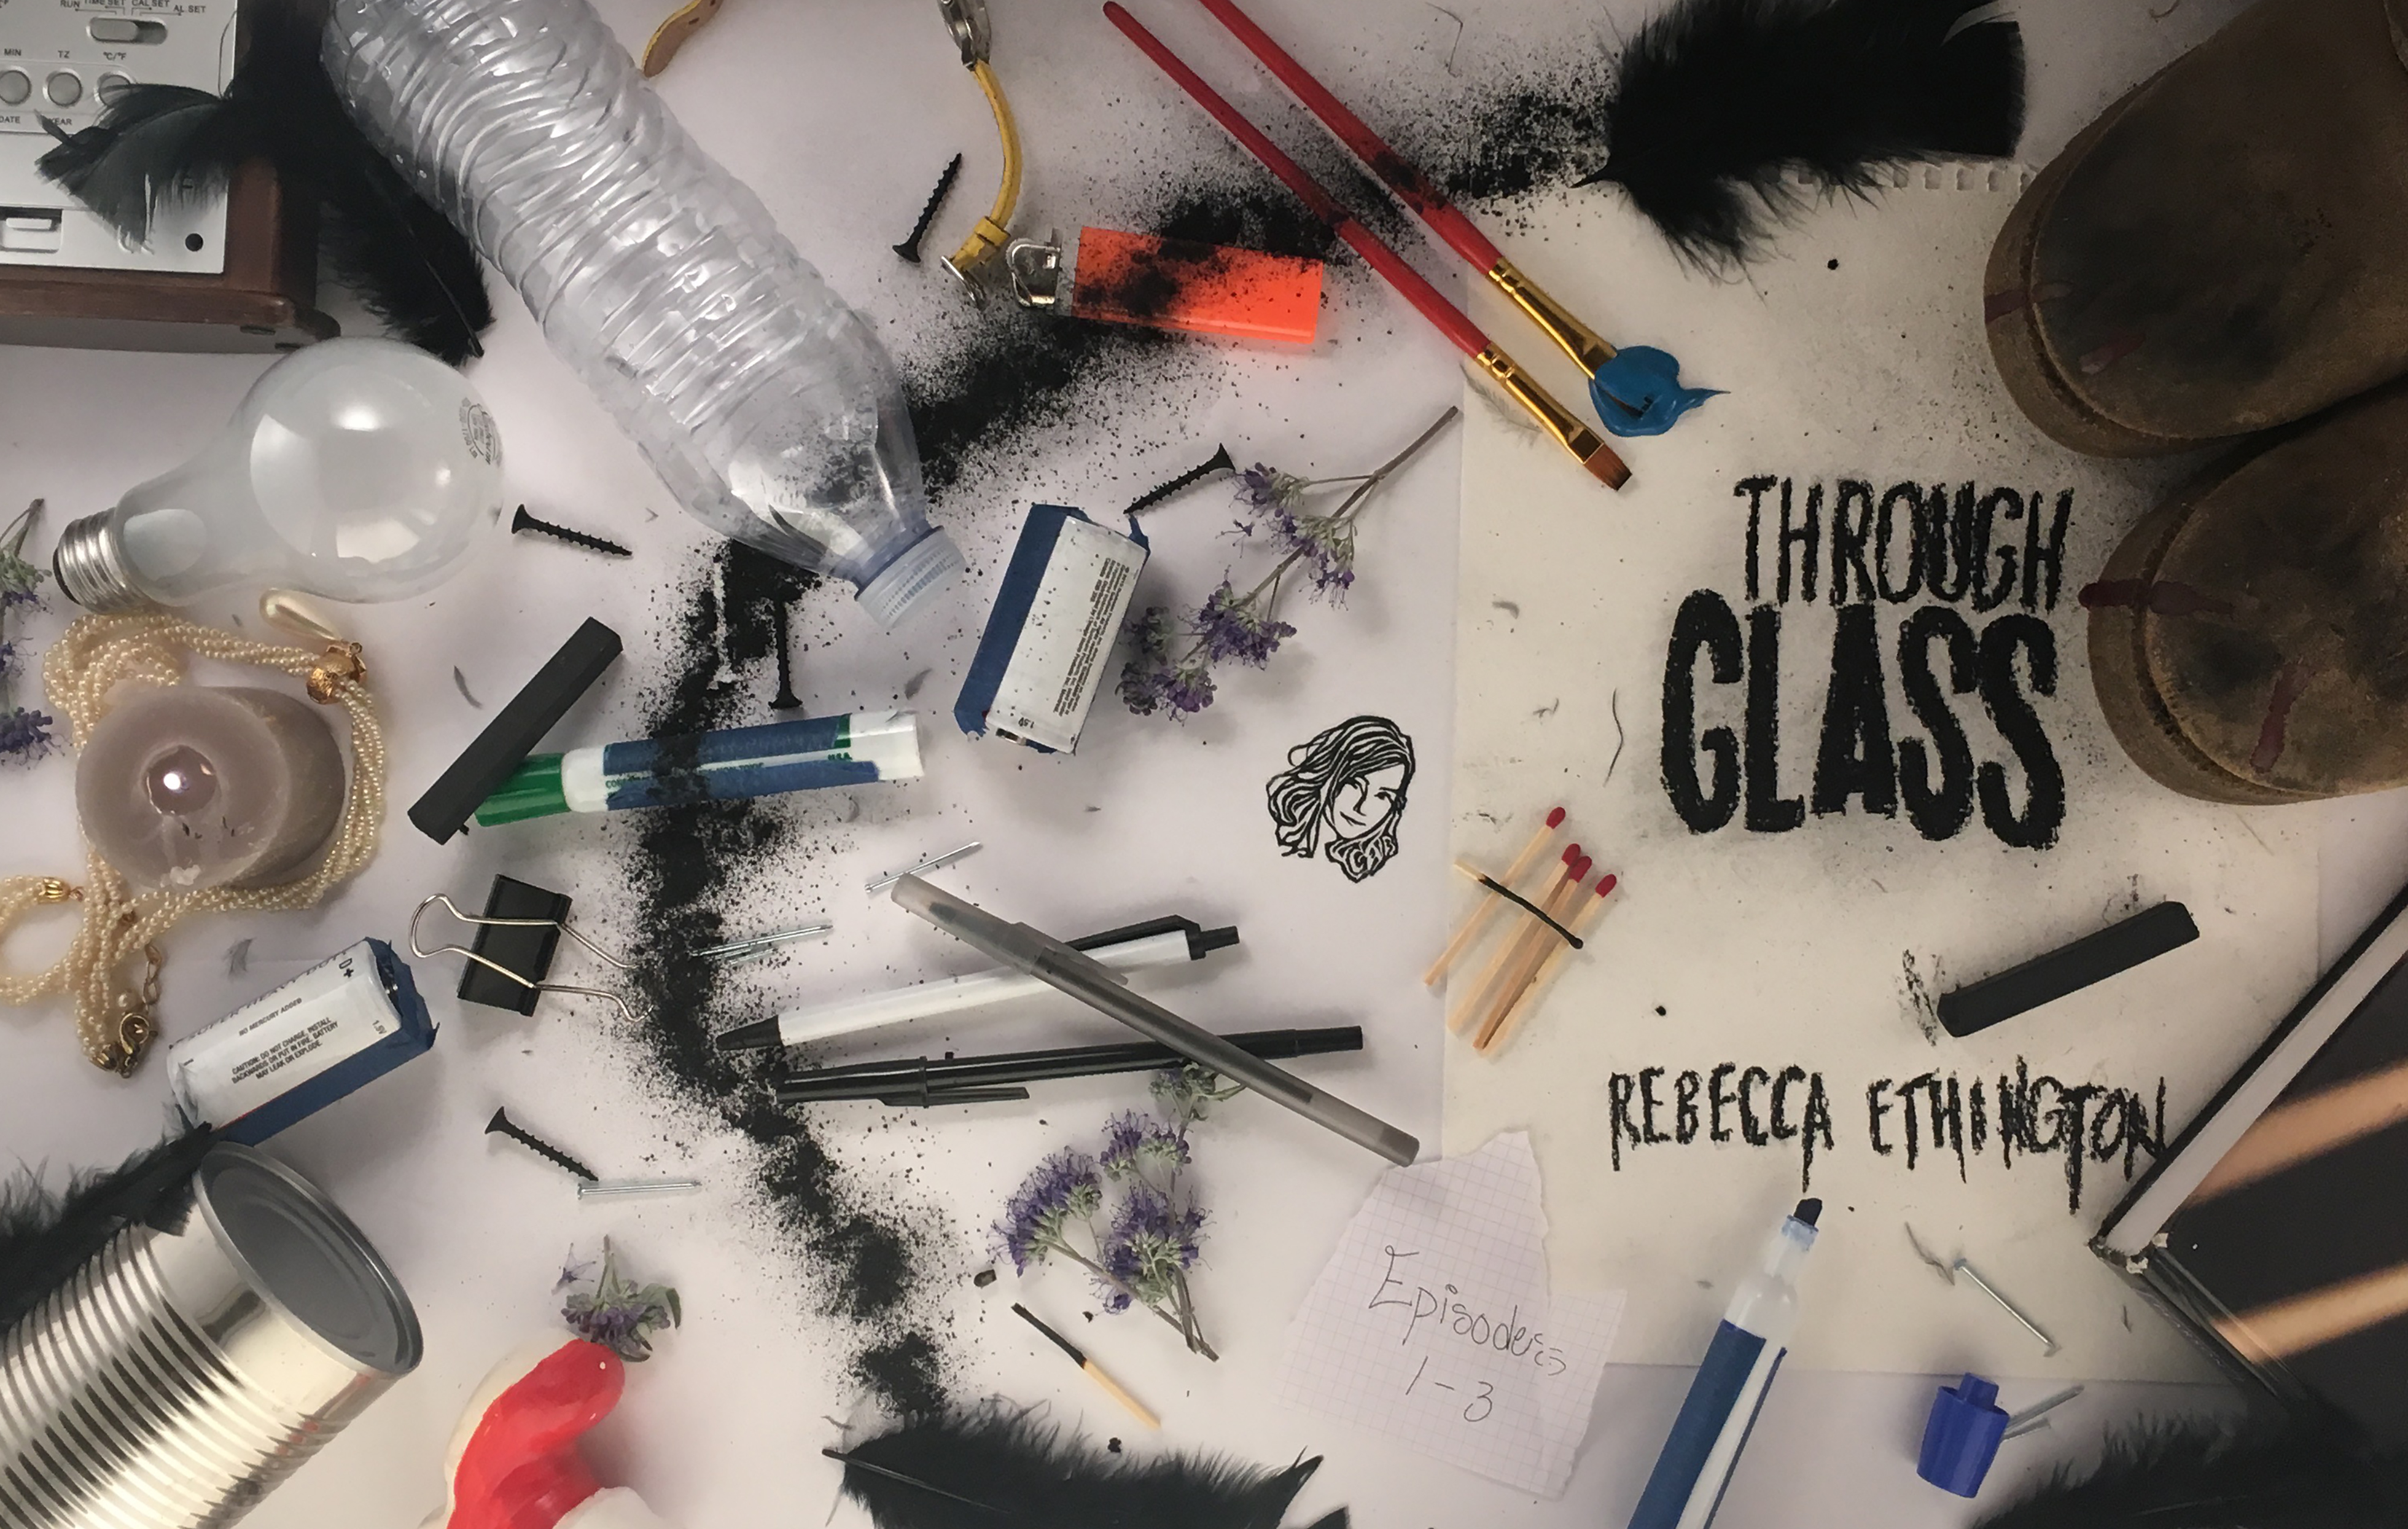 Through Glass is FREE for the first time!